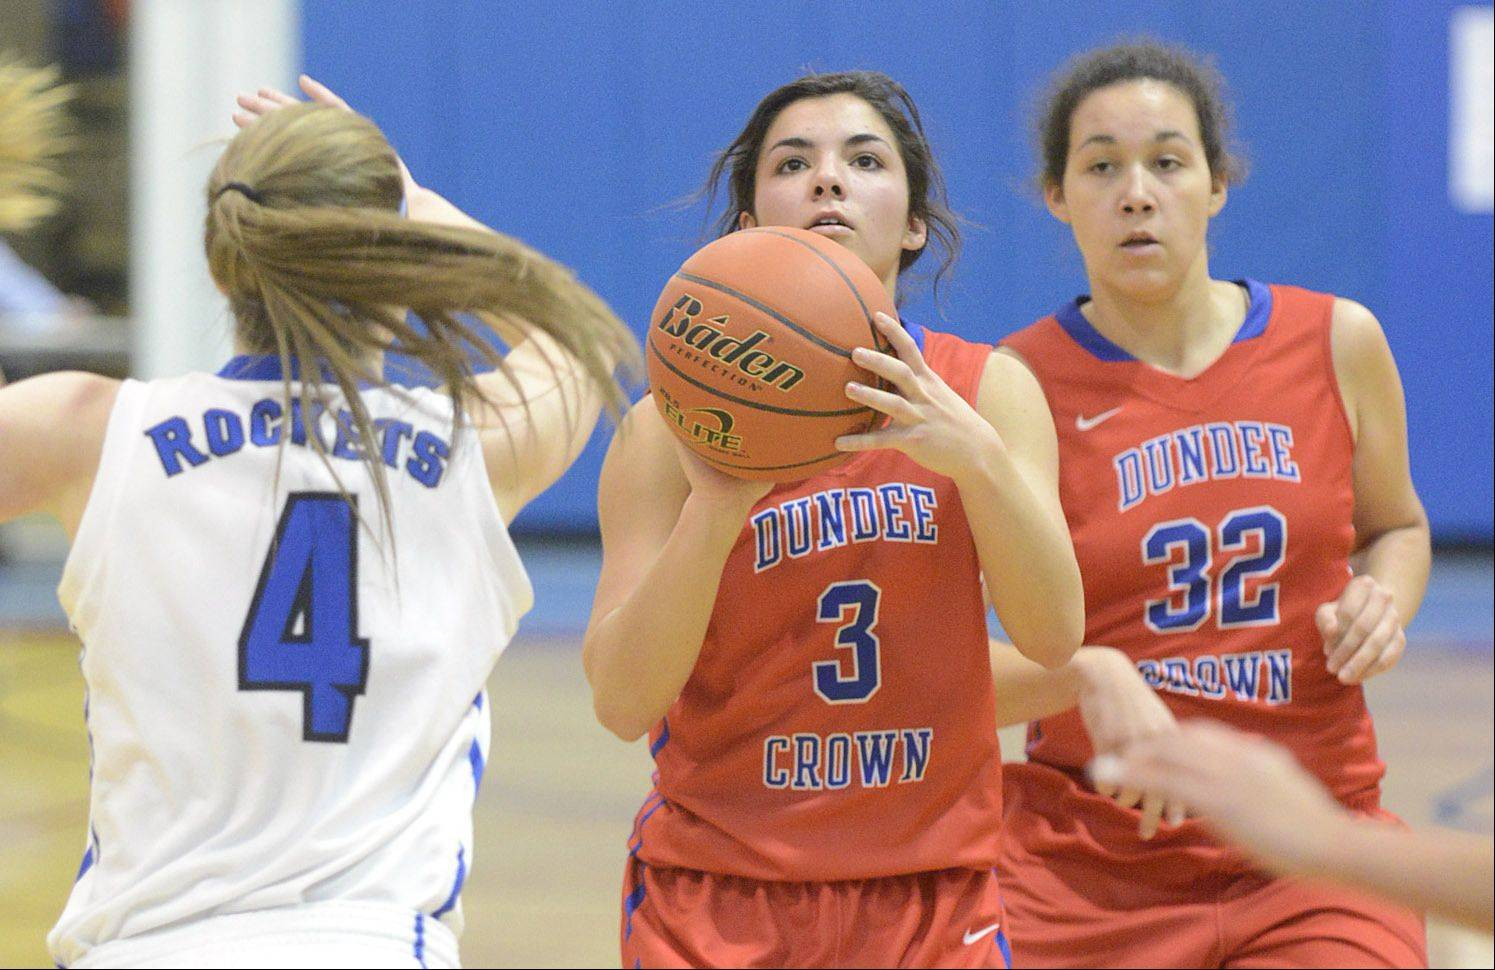 Images: Burlington Central vs. Dundee-Crown girls basketball